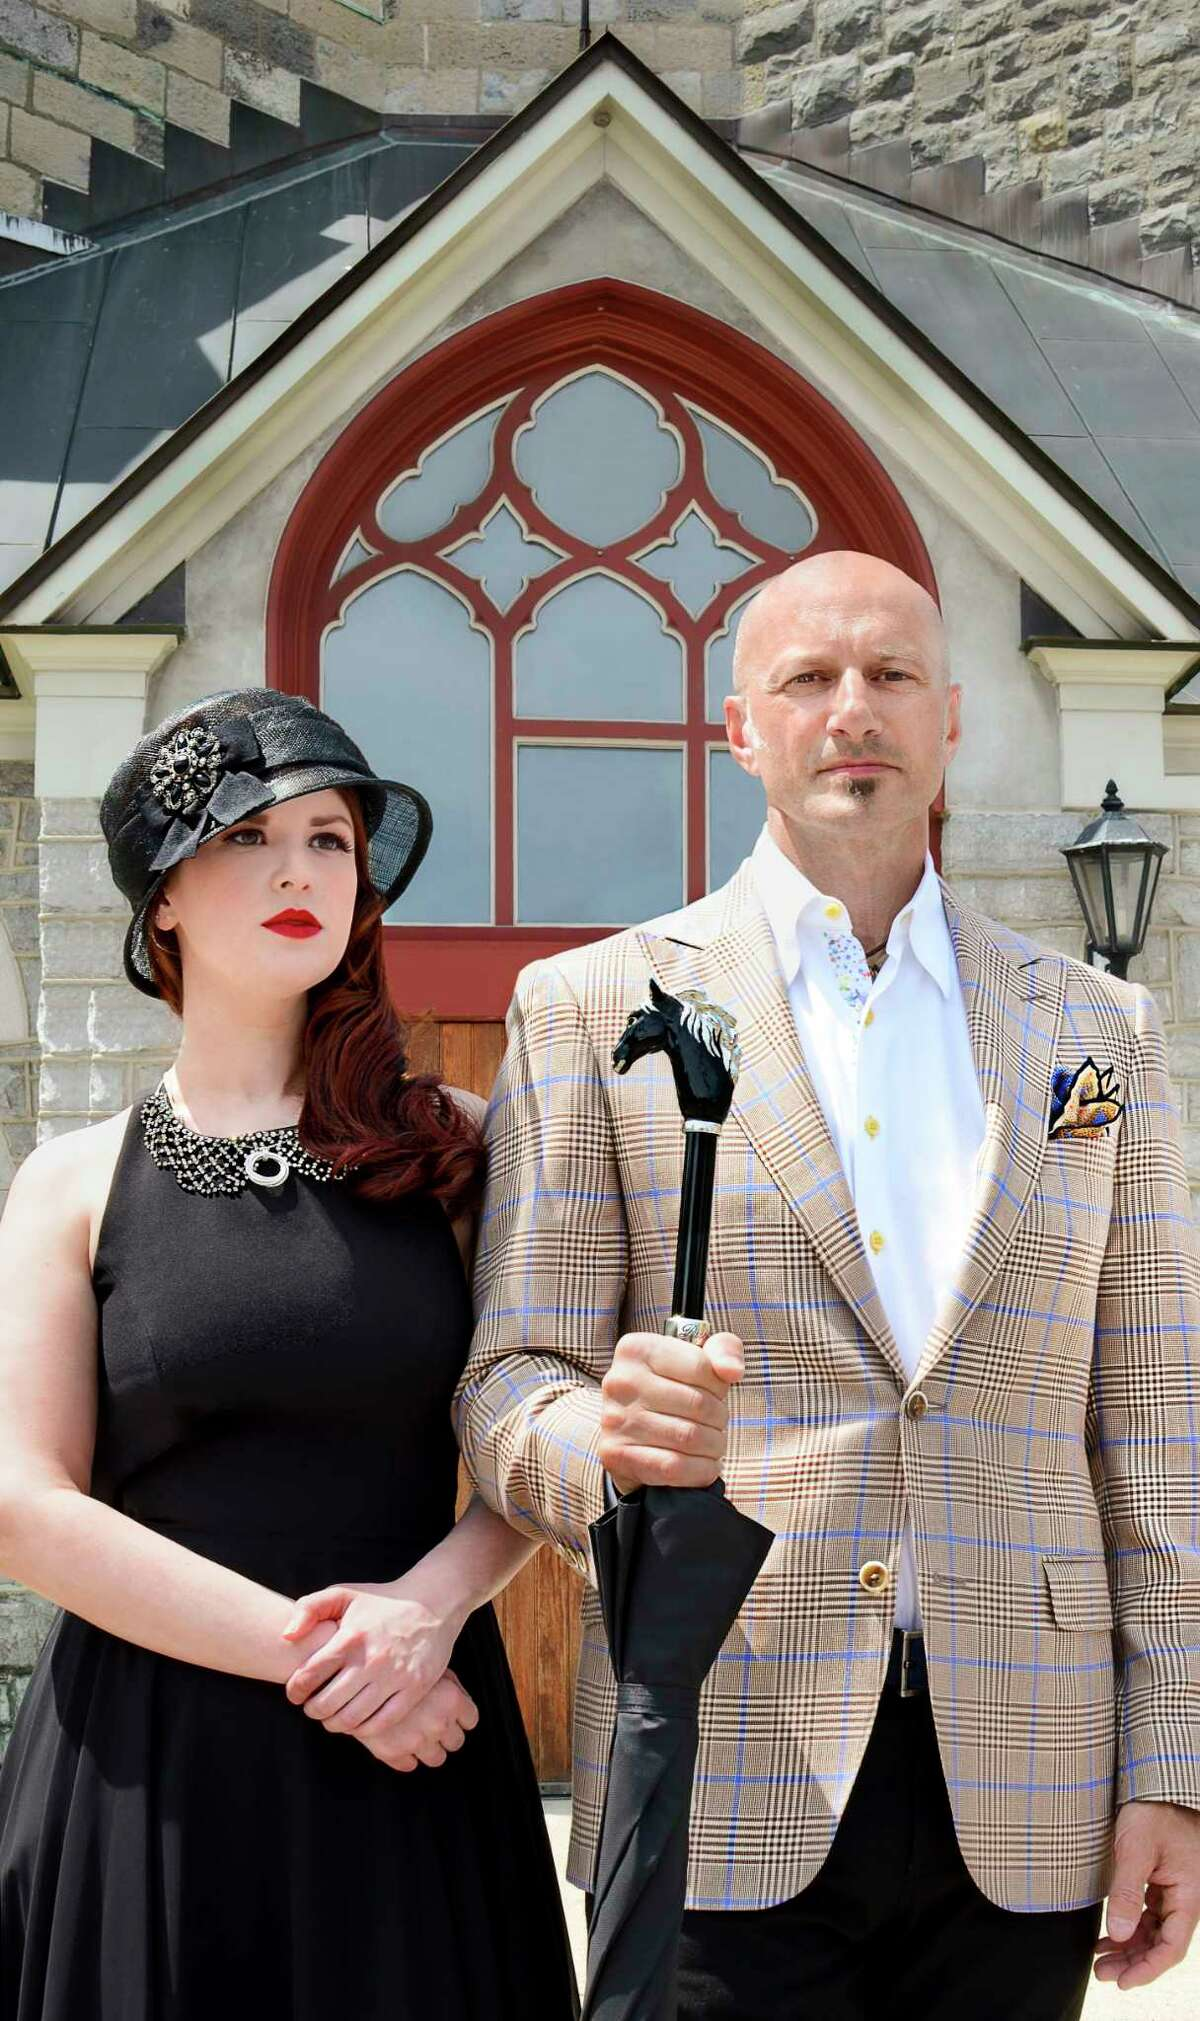 """Models pose for an """"American Gothic"""" inspired fashion shoot in Saratoga Springs, N.Y. on Thursday, June 8, 2017. Erin Hedderman wears a Aidan Mattox high-neck black chiffon handkerchief dress with exposed zipper and cut-out back from Fancy Schmancy, accented by a sterling silver and diamond circle necklace available exclusively at Frank Adams Jewelers. Her black cloche hat with bow detail and pewter broach created by Susanne Dura, also available at Fancy Schmancy. Robert Amore wears clothing from his store, Amore Clothing. (Photo by Colleen Ingerto / Times Union)"""